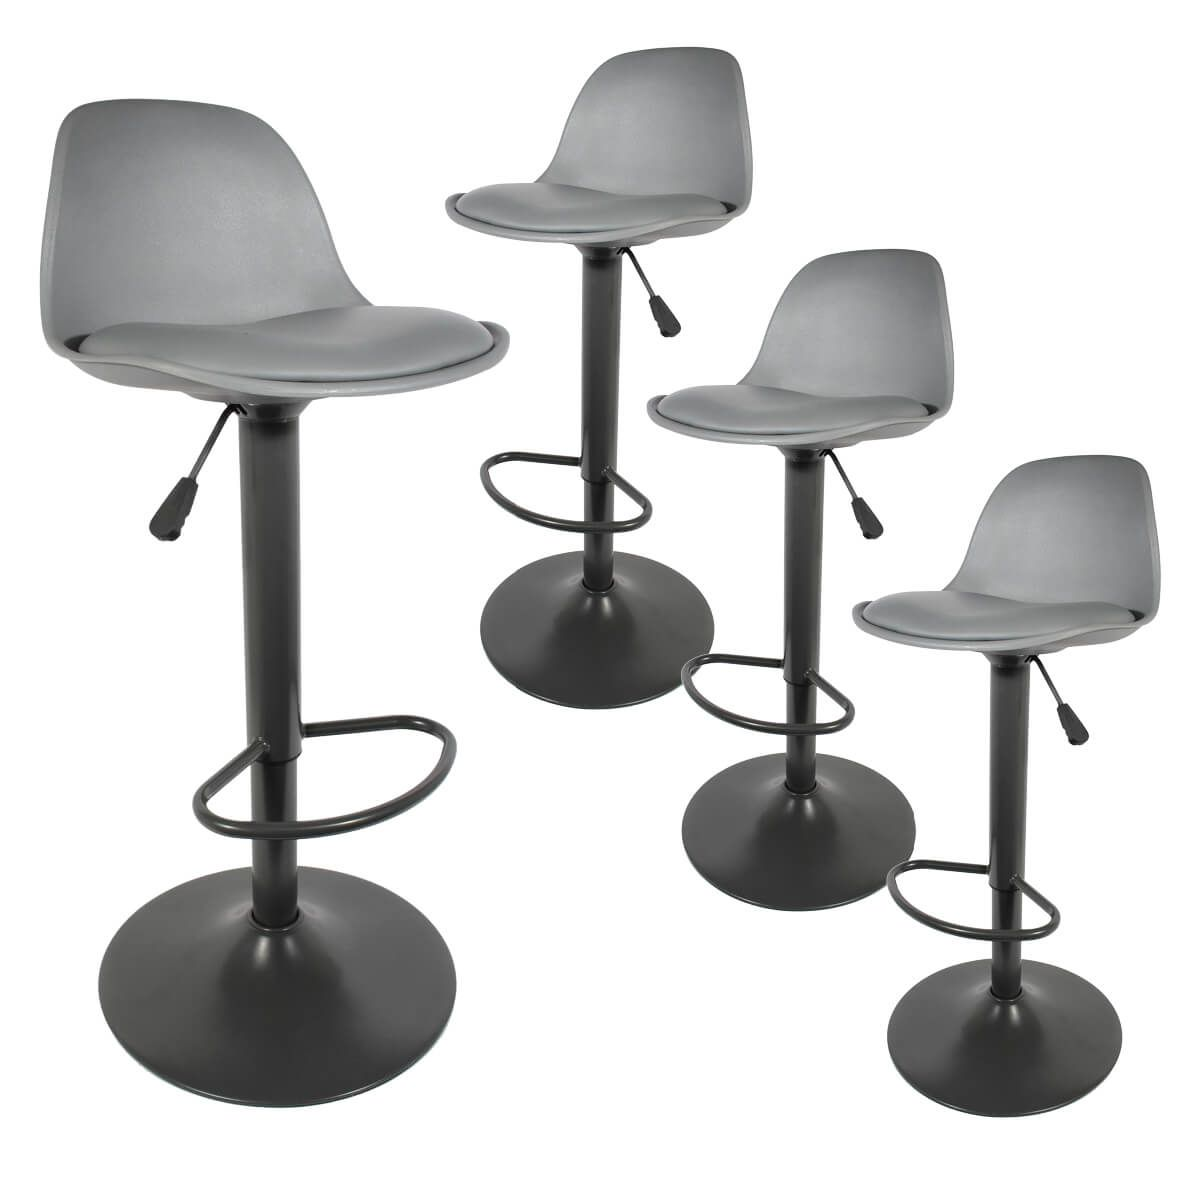 Altobuy Newton Lot De 4 Tabourets De Bar Coloris Gris Neuf Ebay